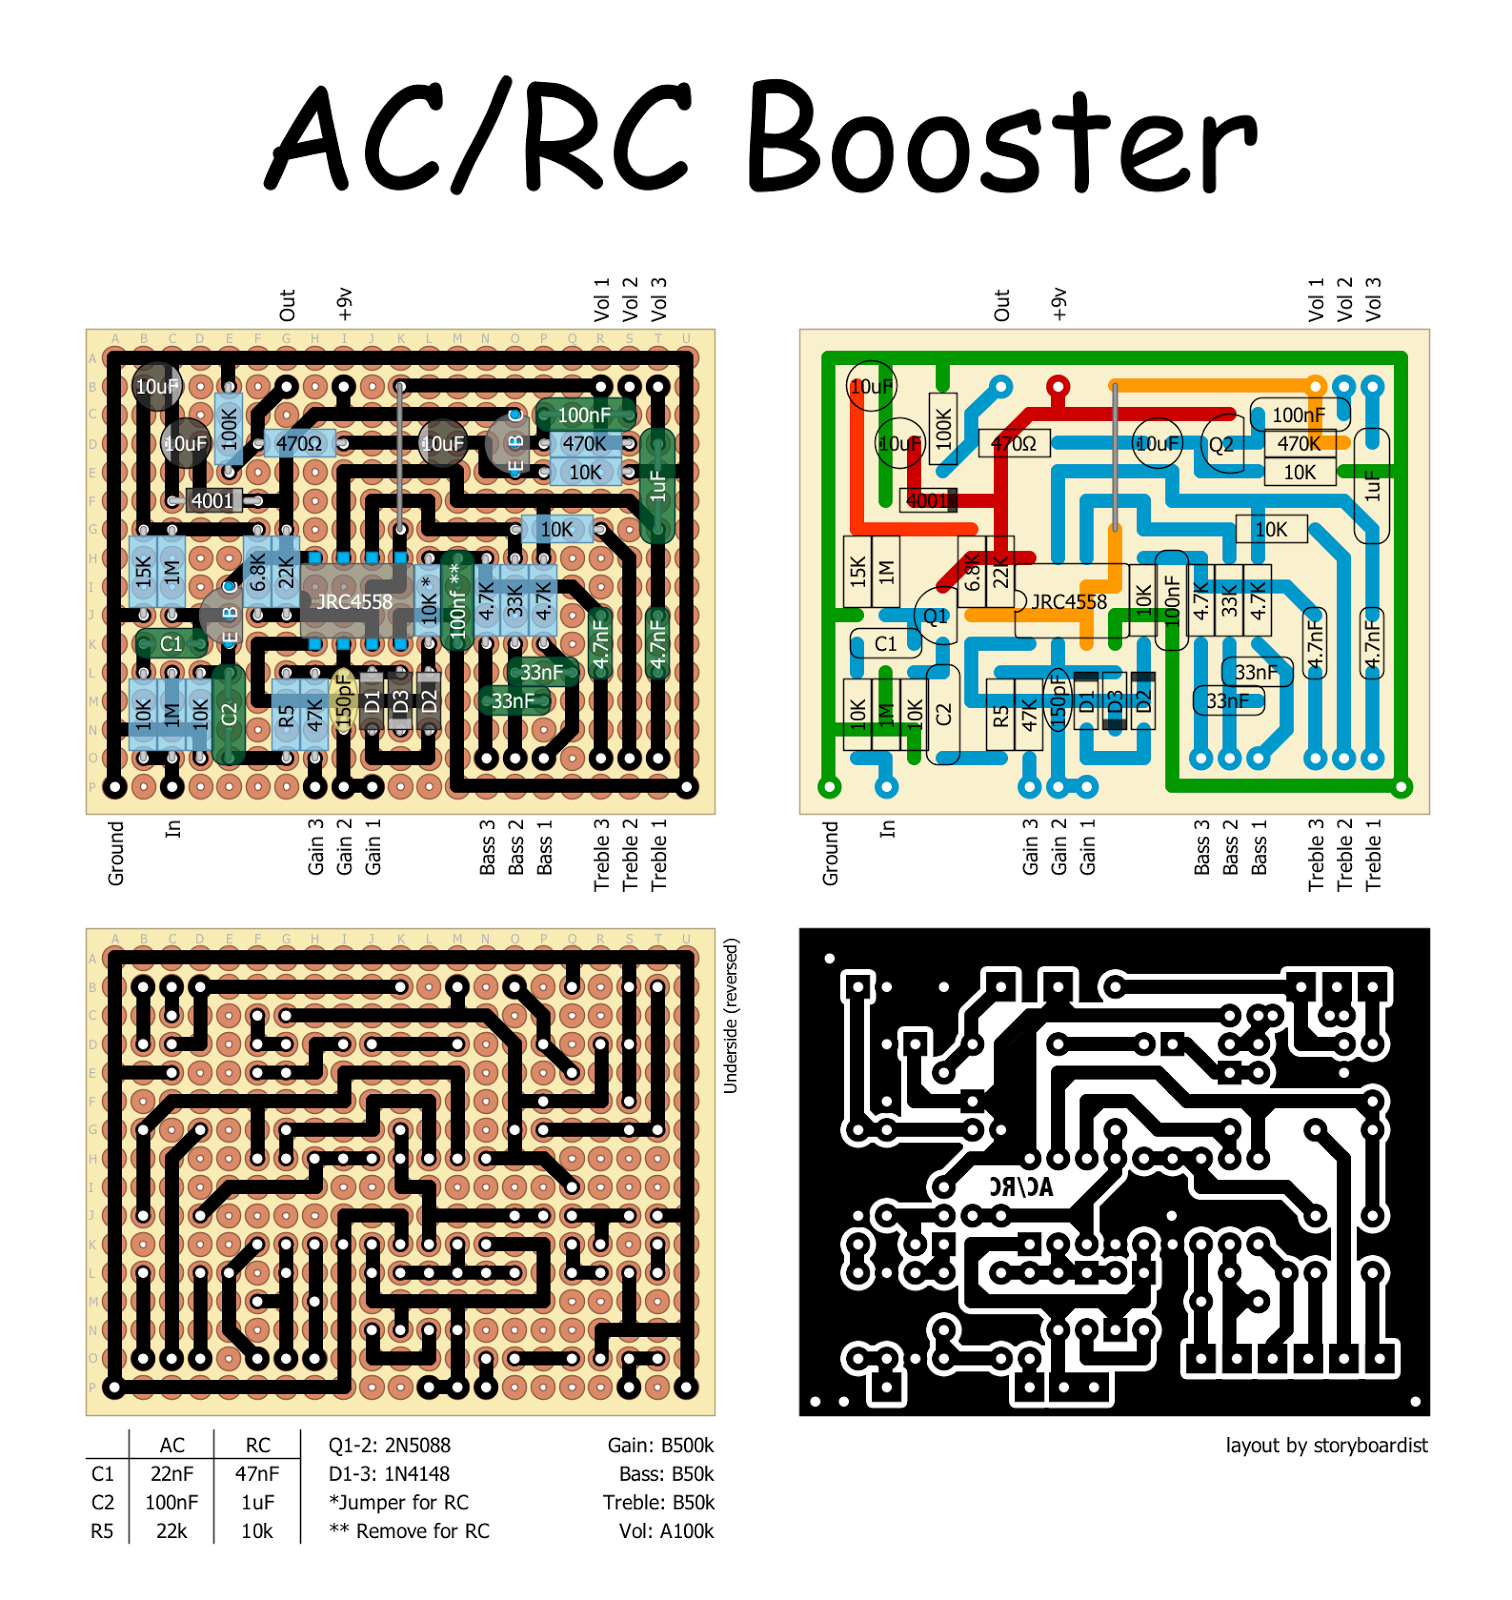 Rc Booster Pedal Schematic Block And Diagrams Car Wiring Perf Pcb Effects Layouts Xotic Ac Rh Effectslayouts Blogspot Com 6 Ch Plane Diagram Radio Control Schematics